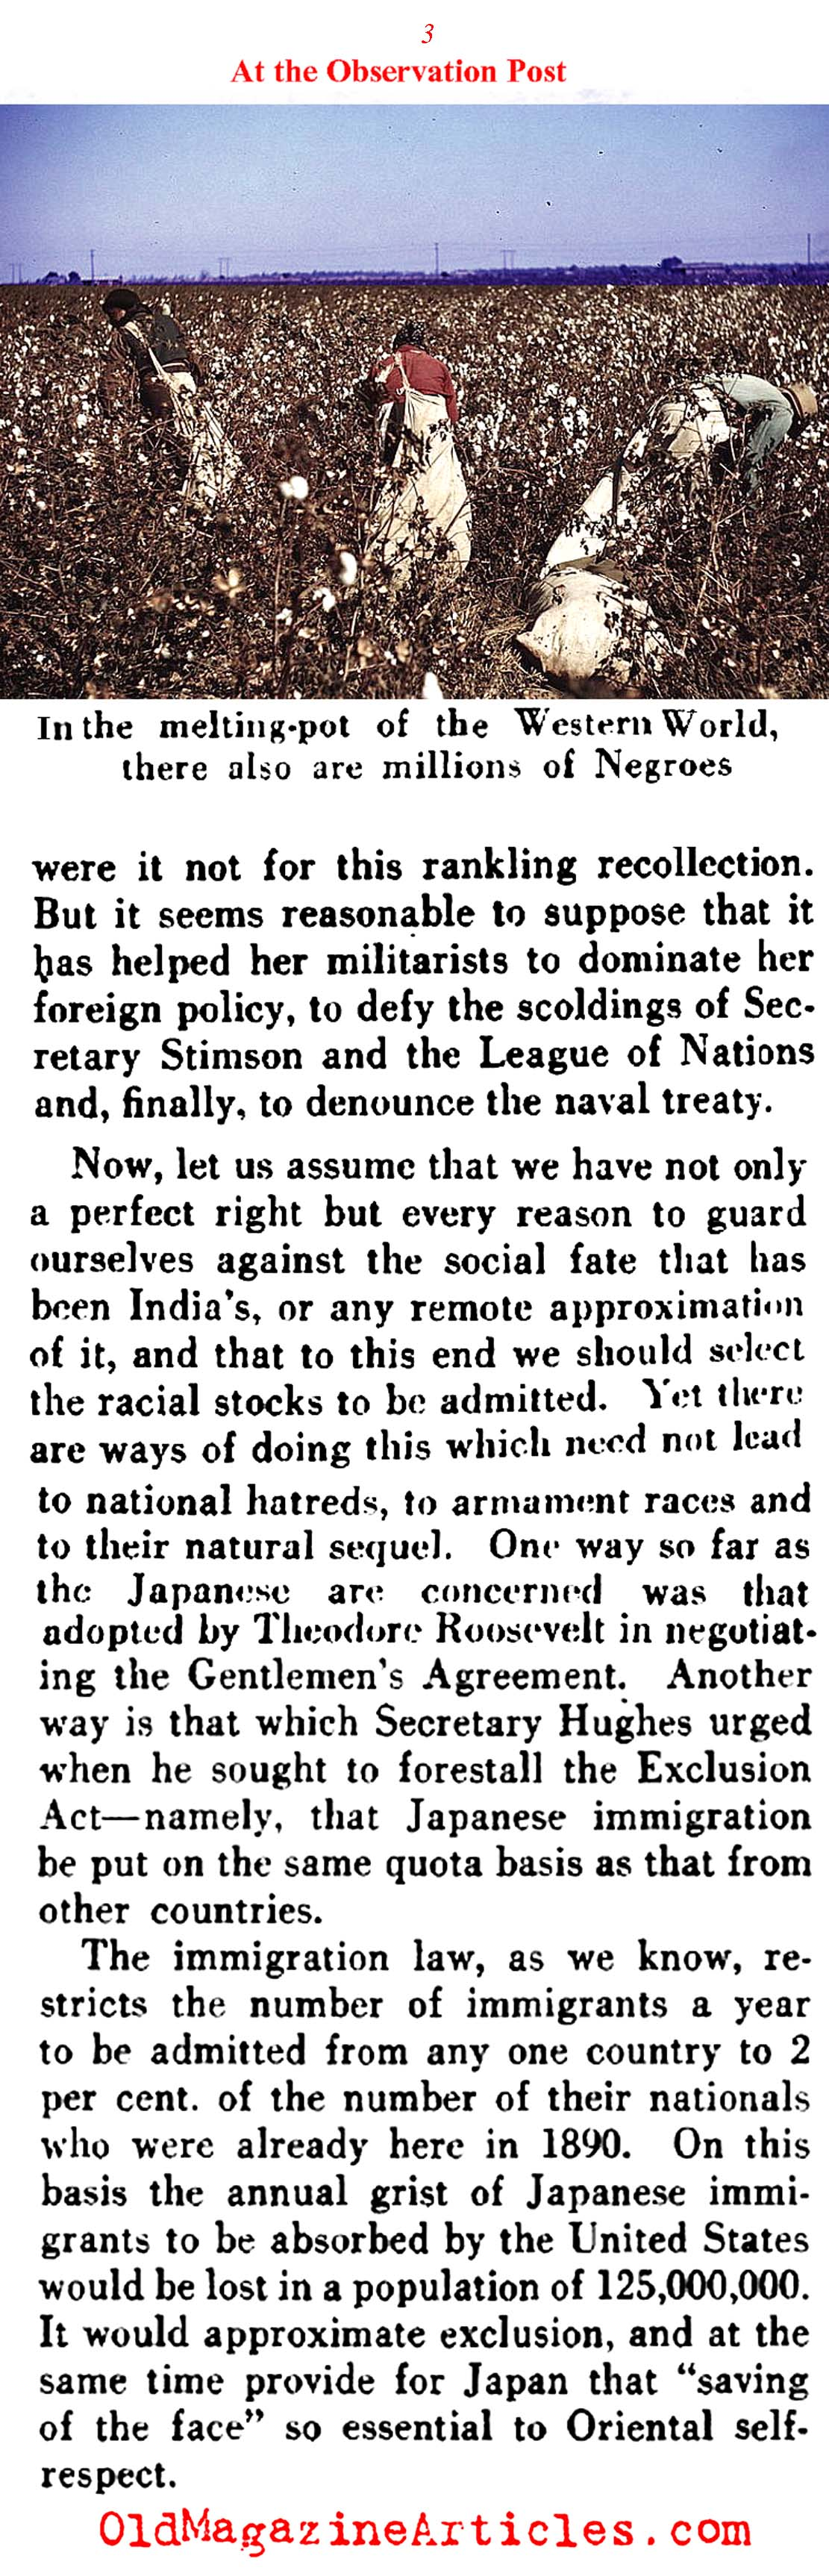 A Call to Repeal the Japanese Exclusion Act (Literary Digest, 1935)